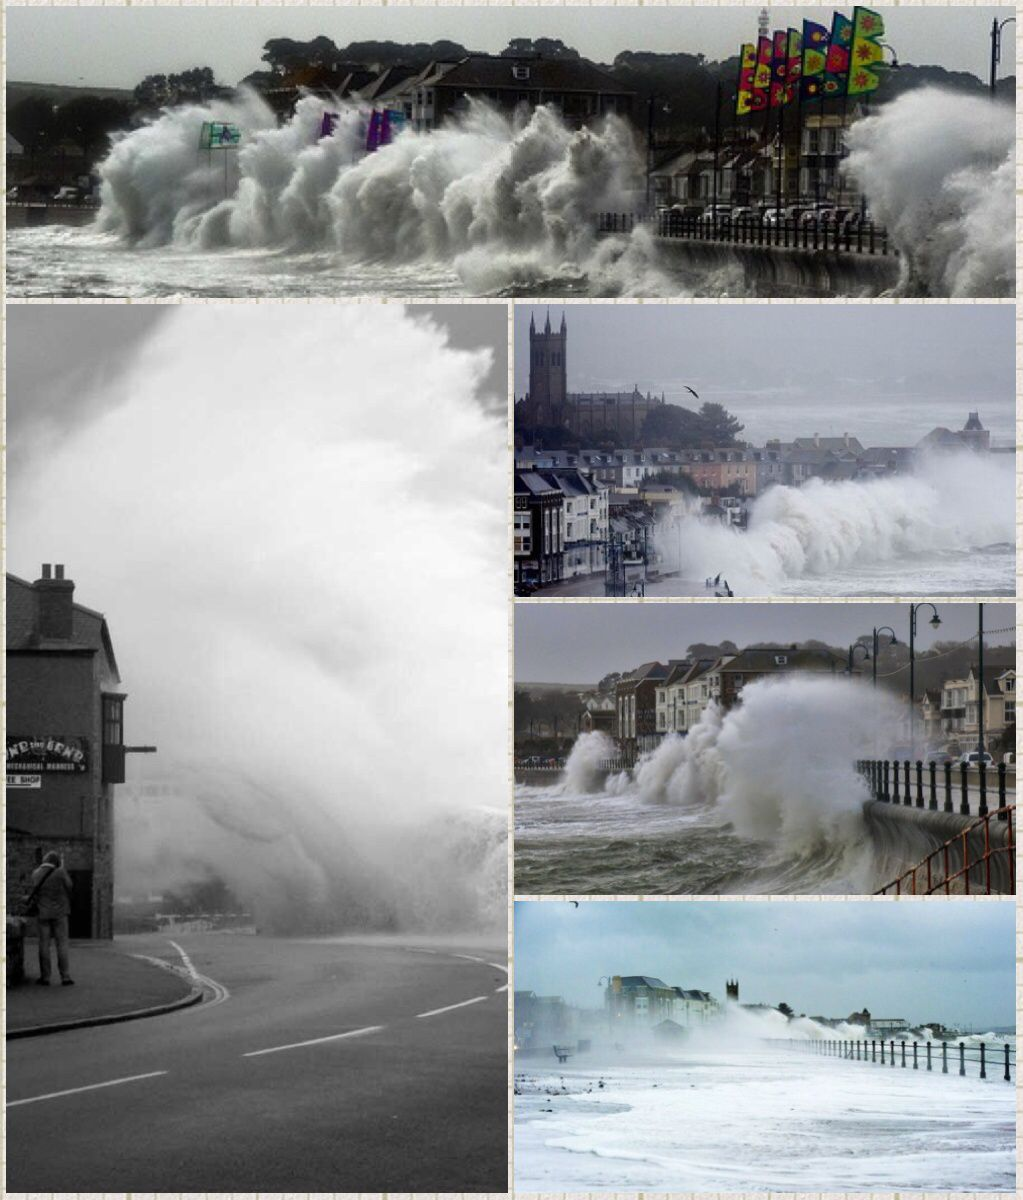 Storm images of Penzance Cornwall, includes some images ...Hurricane Sally 2014